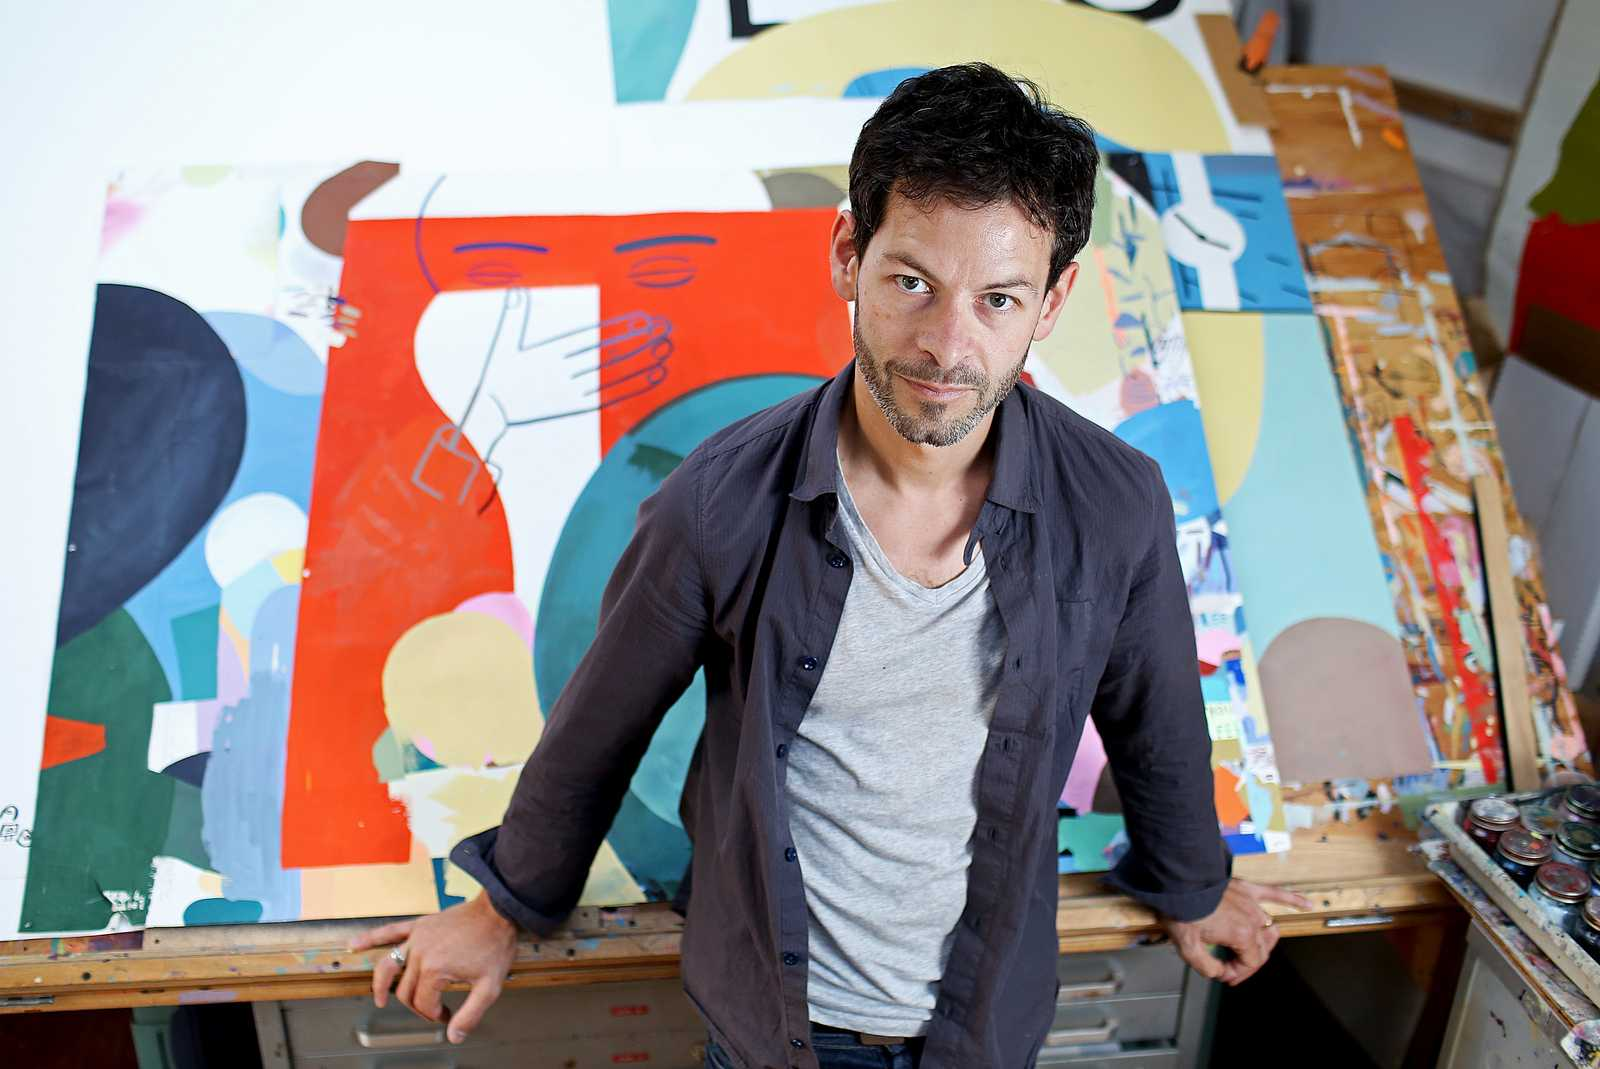 Jason Jägel, a San Francisco based local artist who is featured in the Illuminated Library Exhibit at SF State, stands in his studio located in the Mission District. Photo by Virginia Tieman / Xpress